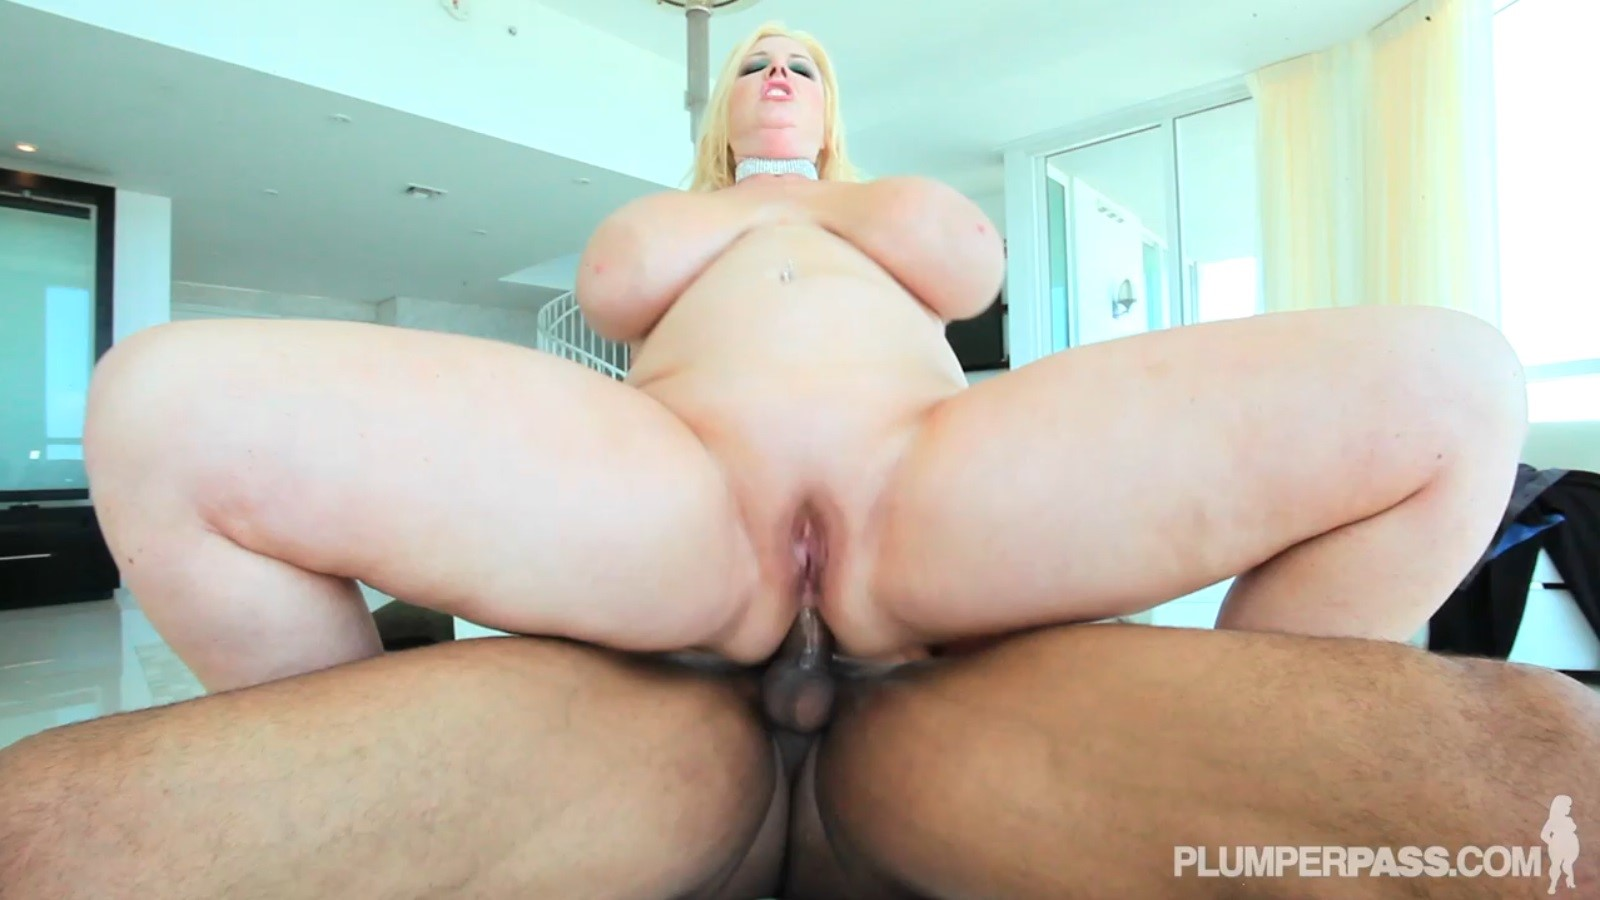 Zoey andrews anal